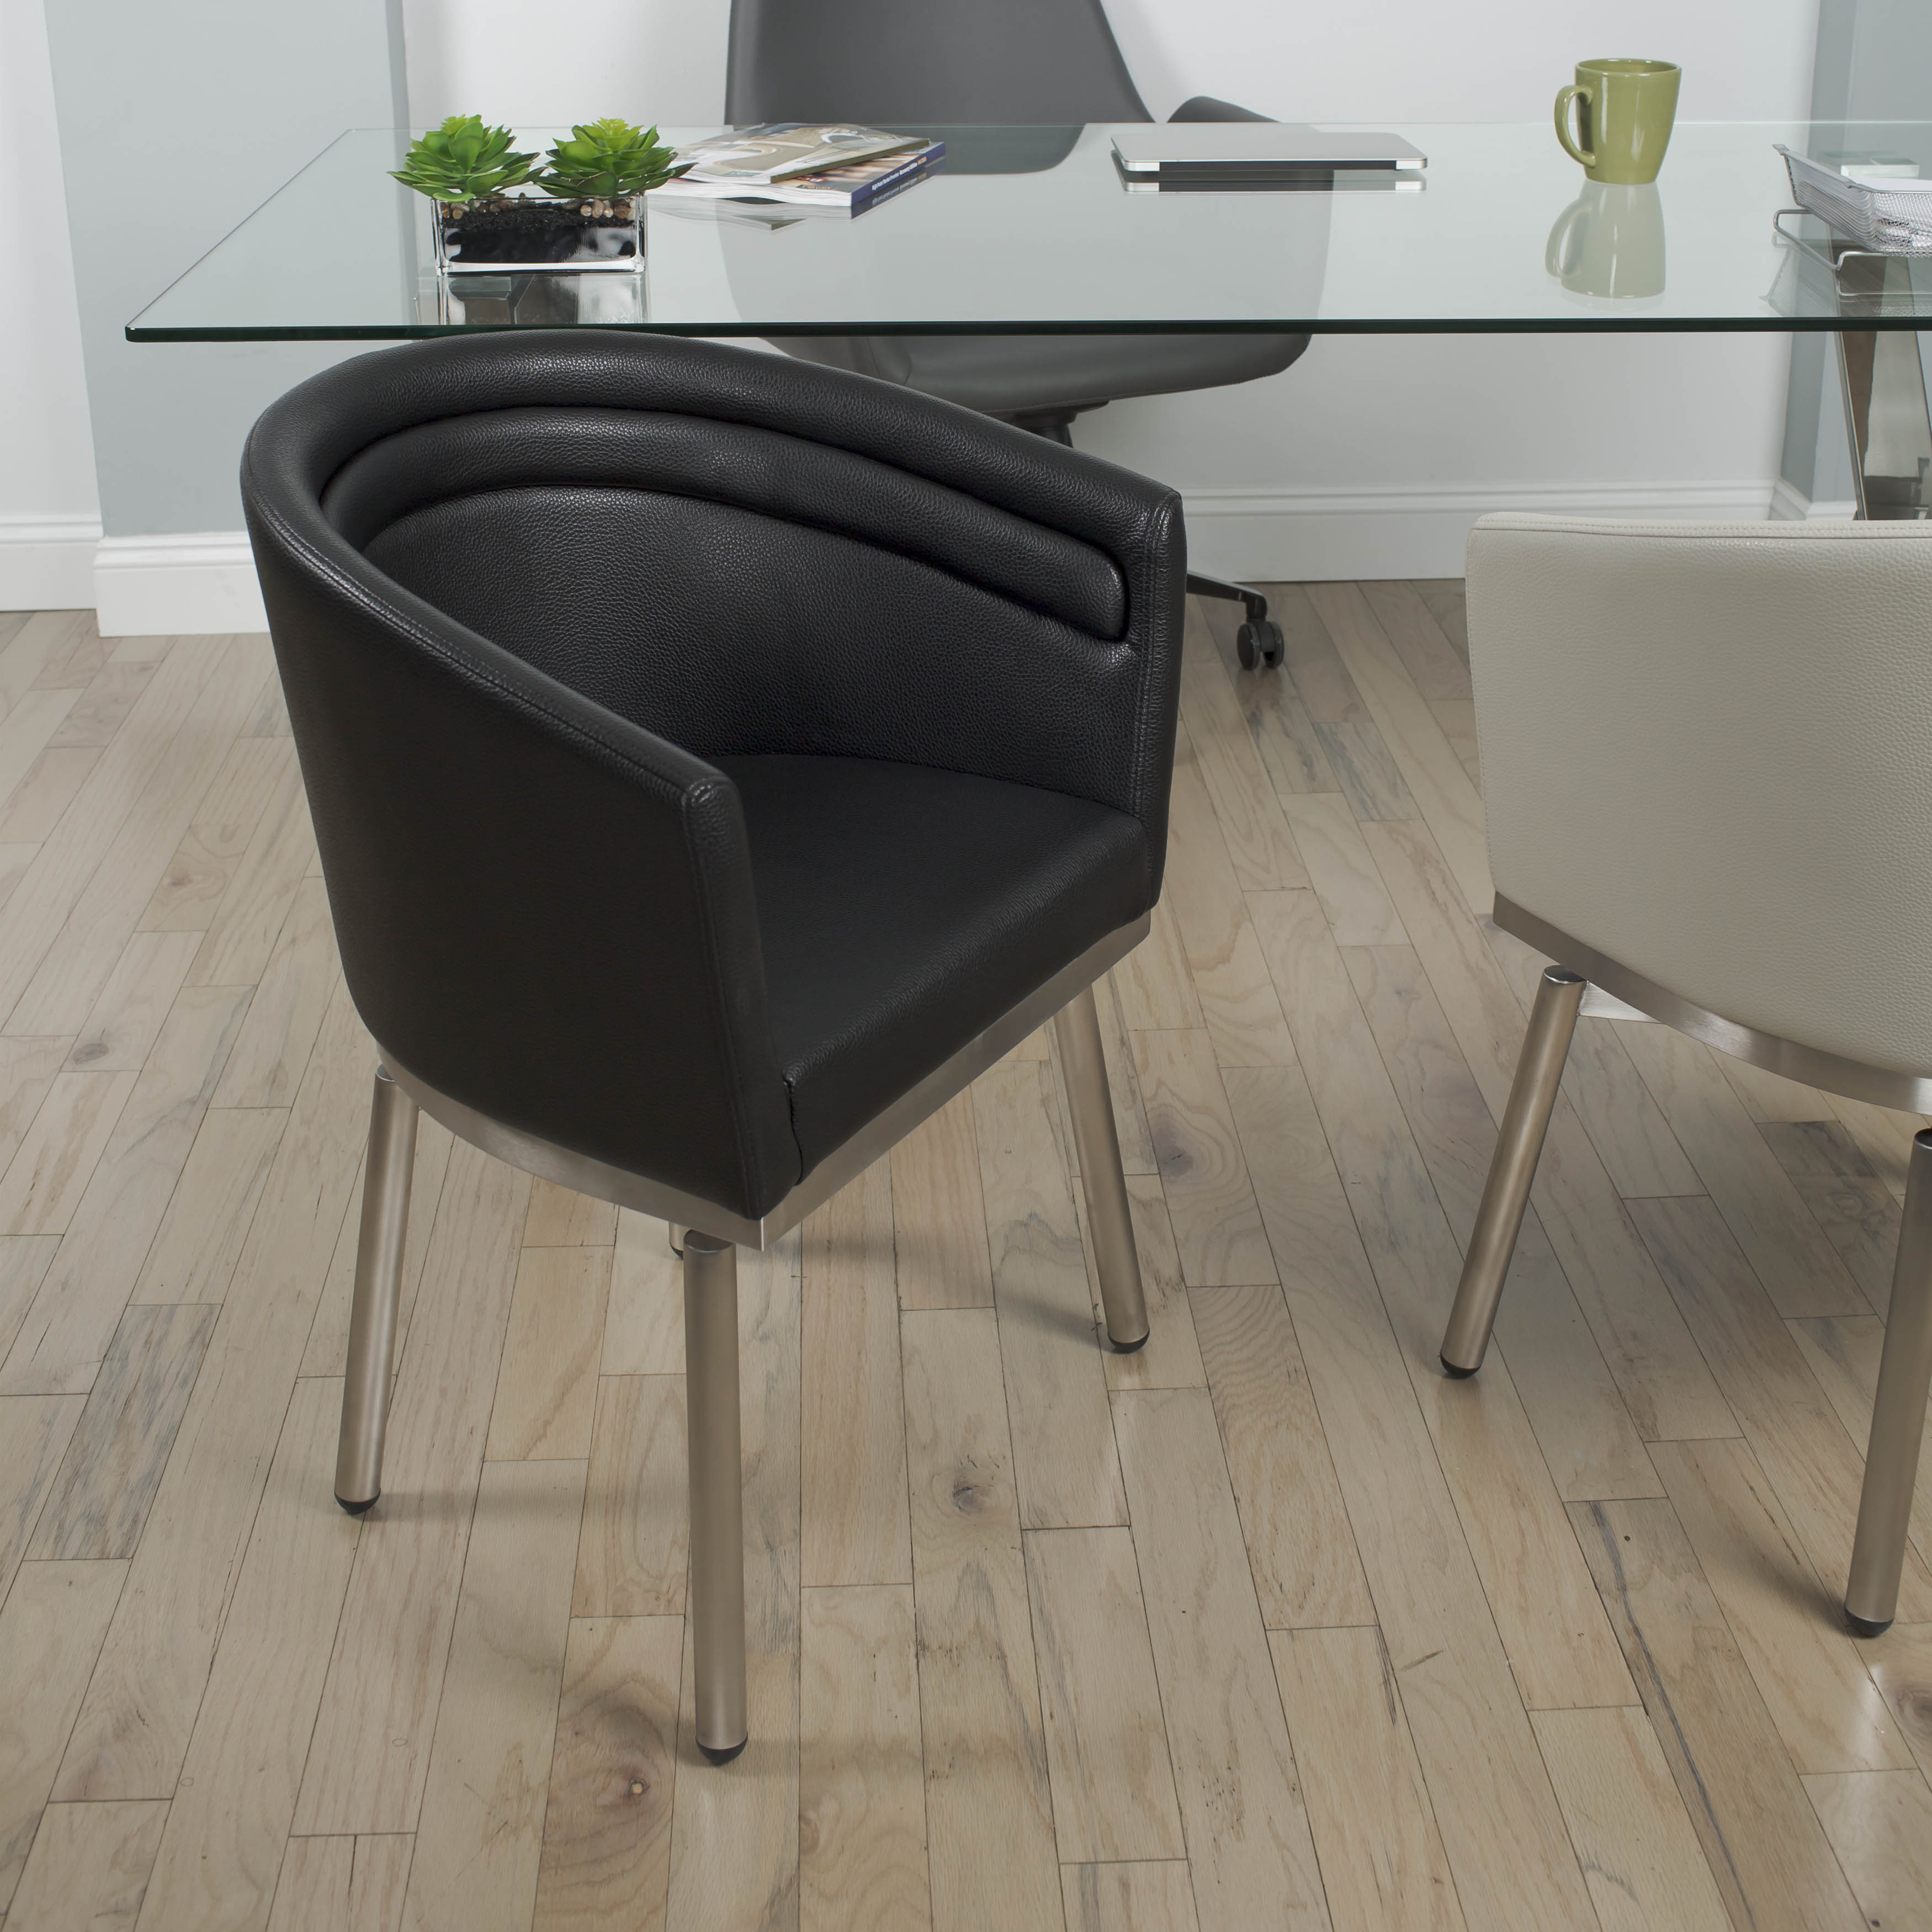 table with swivel chairs quality directors matrix brushed stainless steel round glass dining and memory 5 piece set walmart com